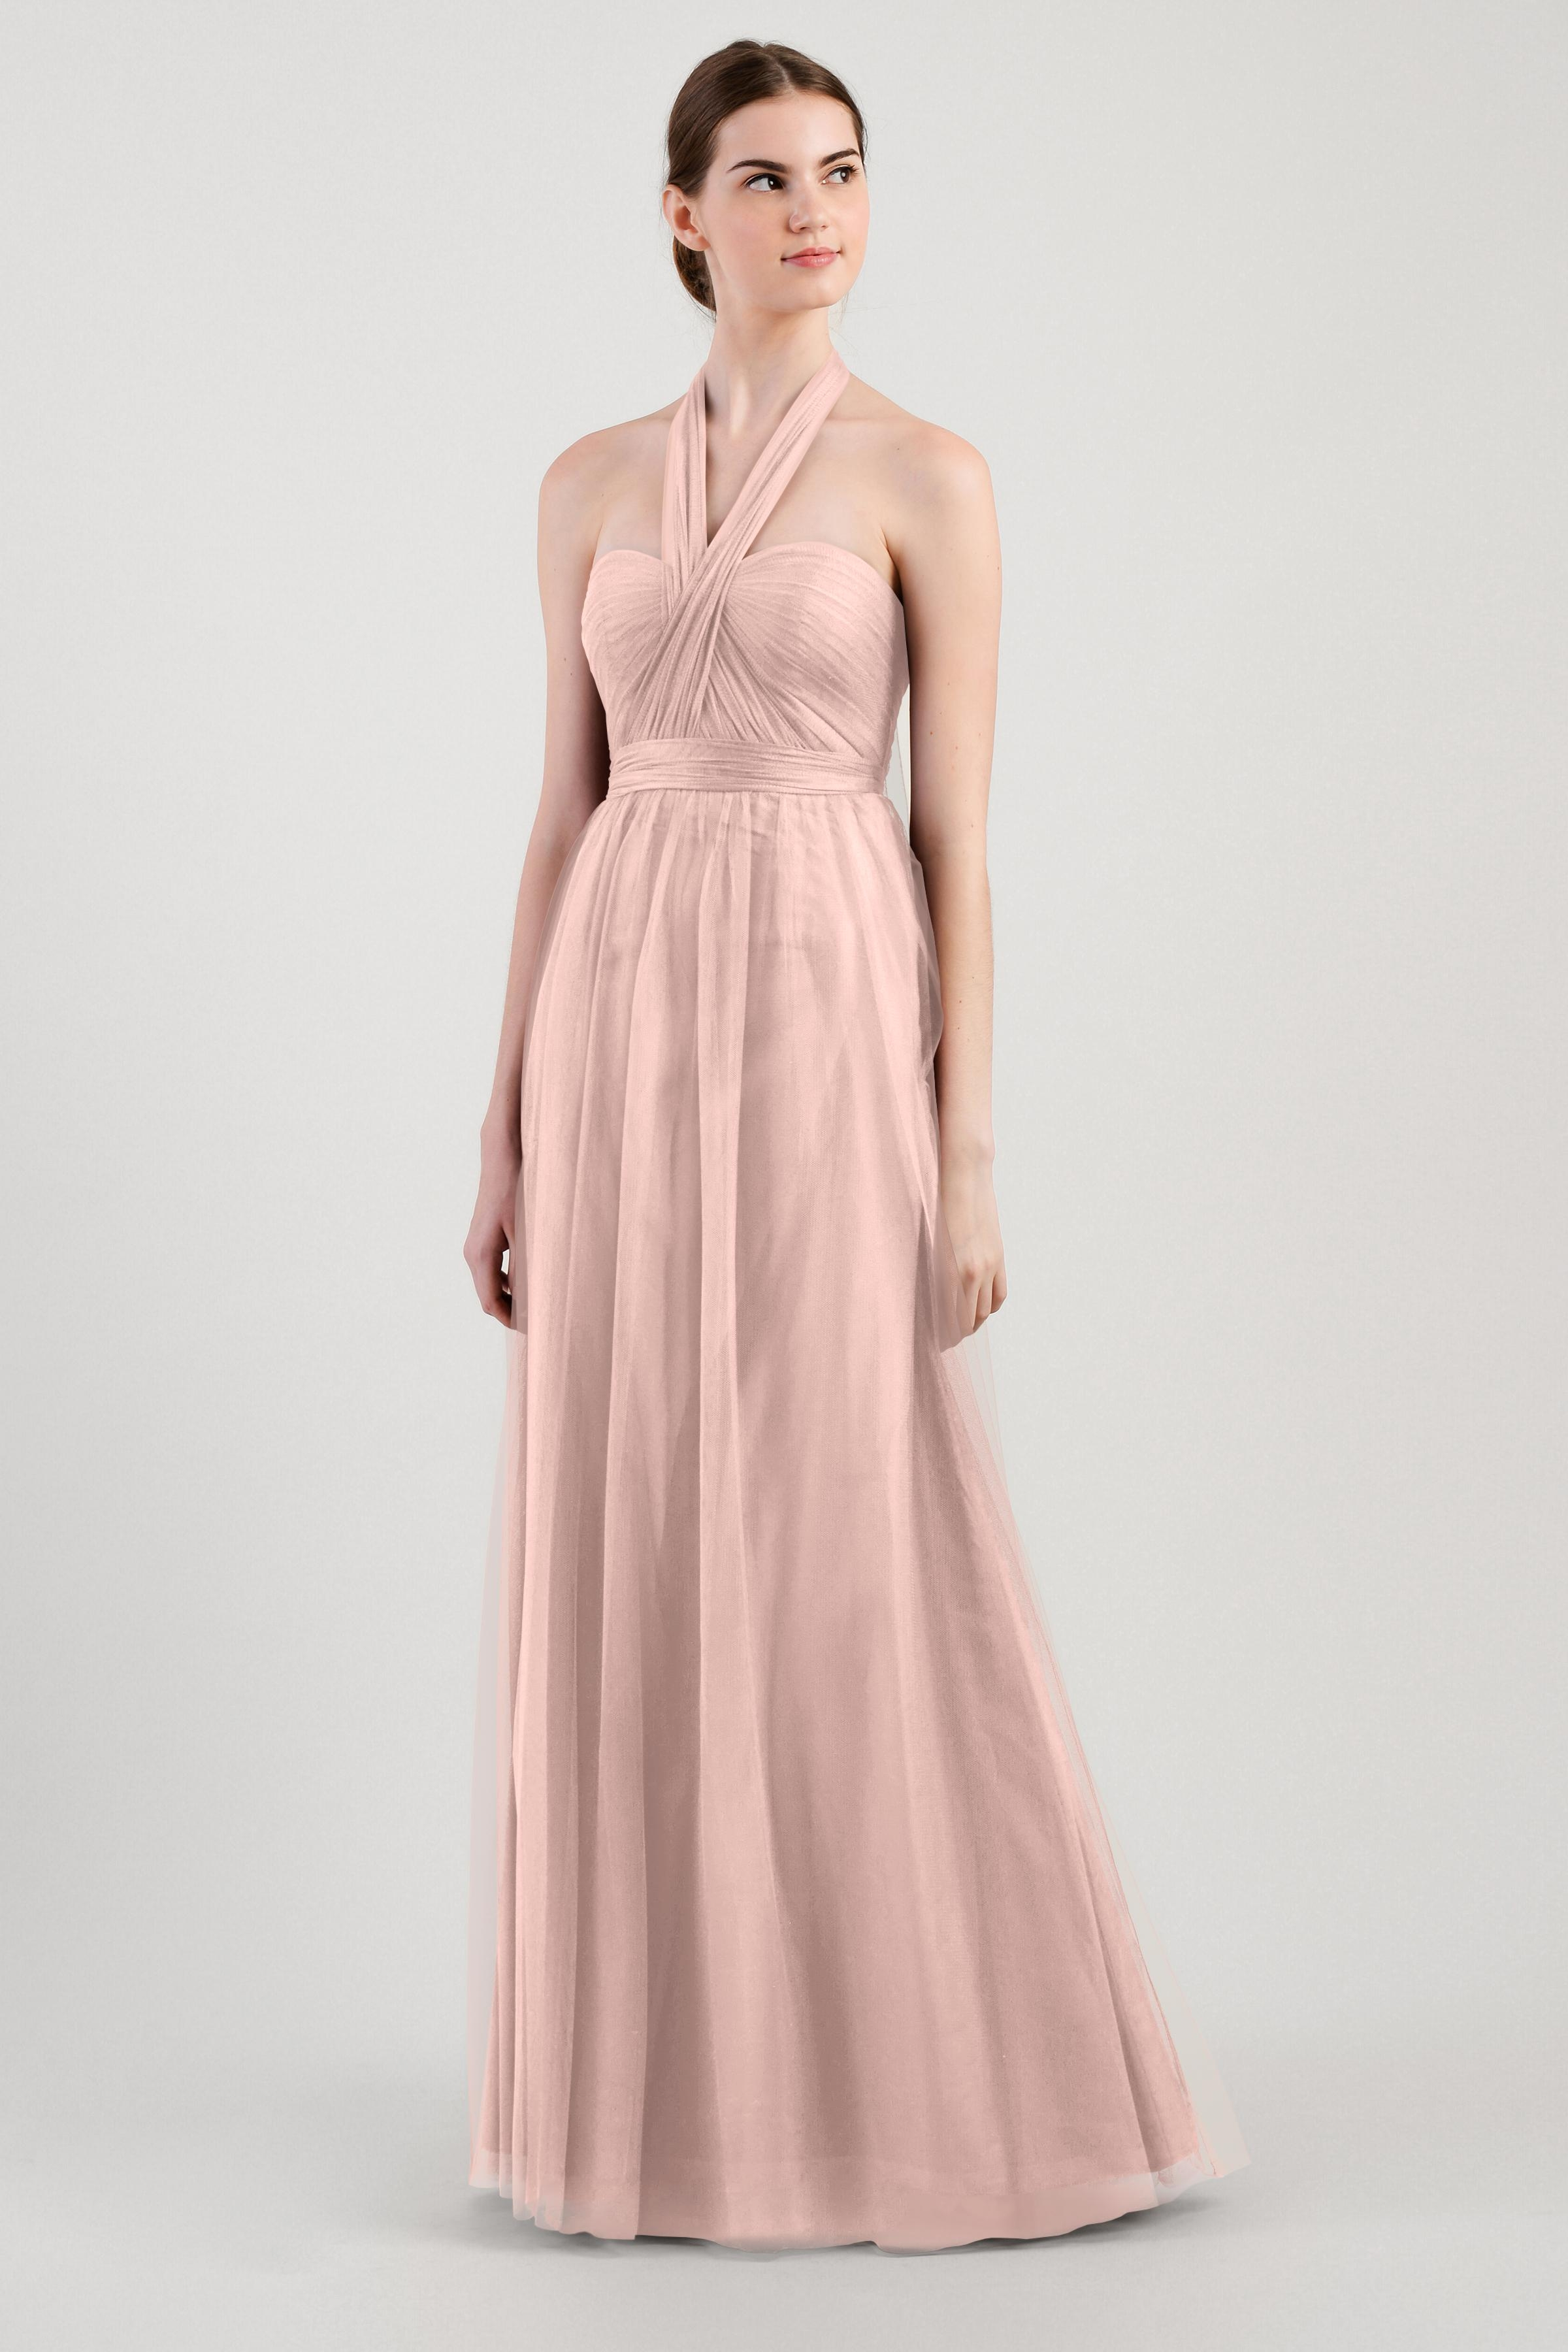 Annabelle Bridesmaids Dress By Jenny Yoo Whipped Apricot